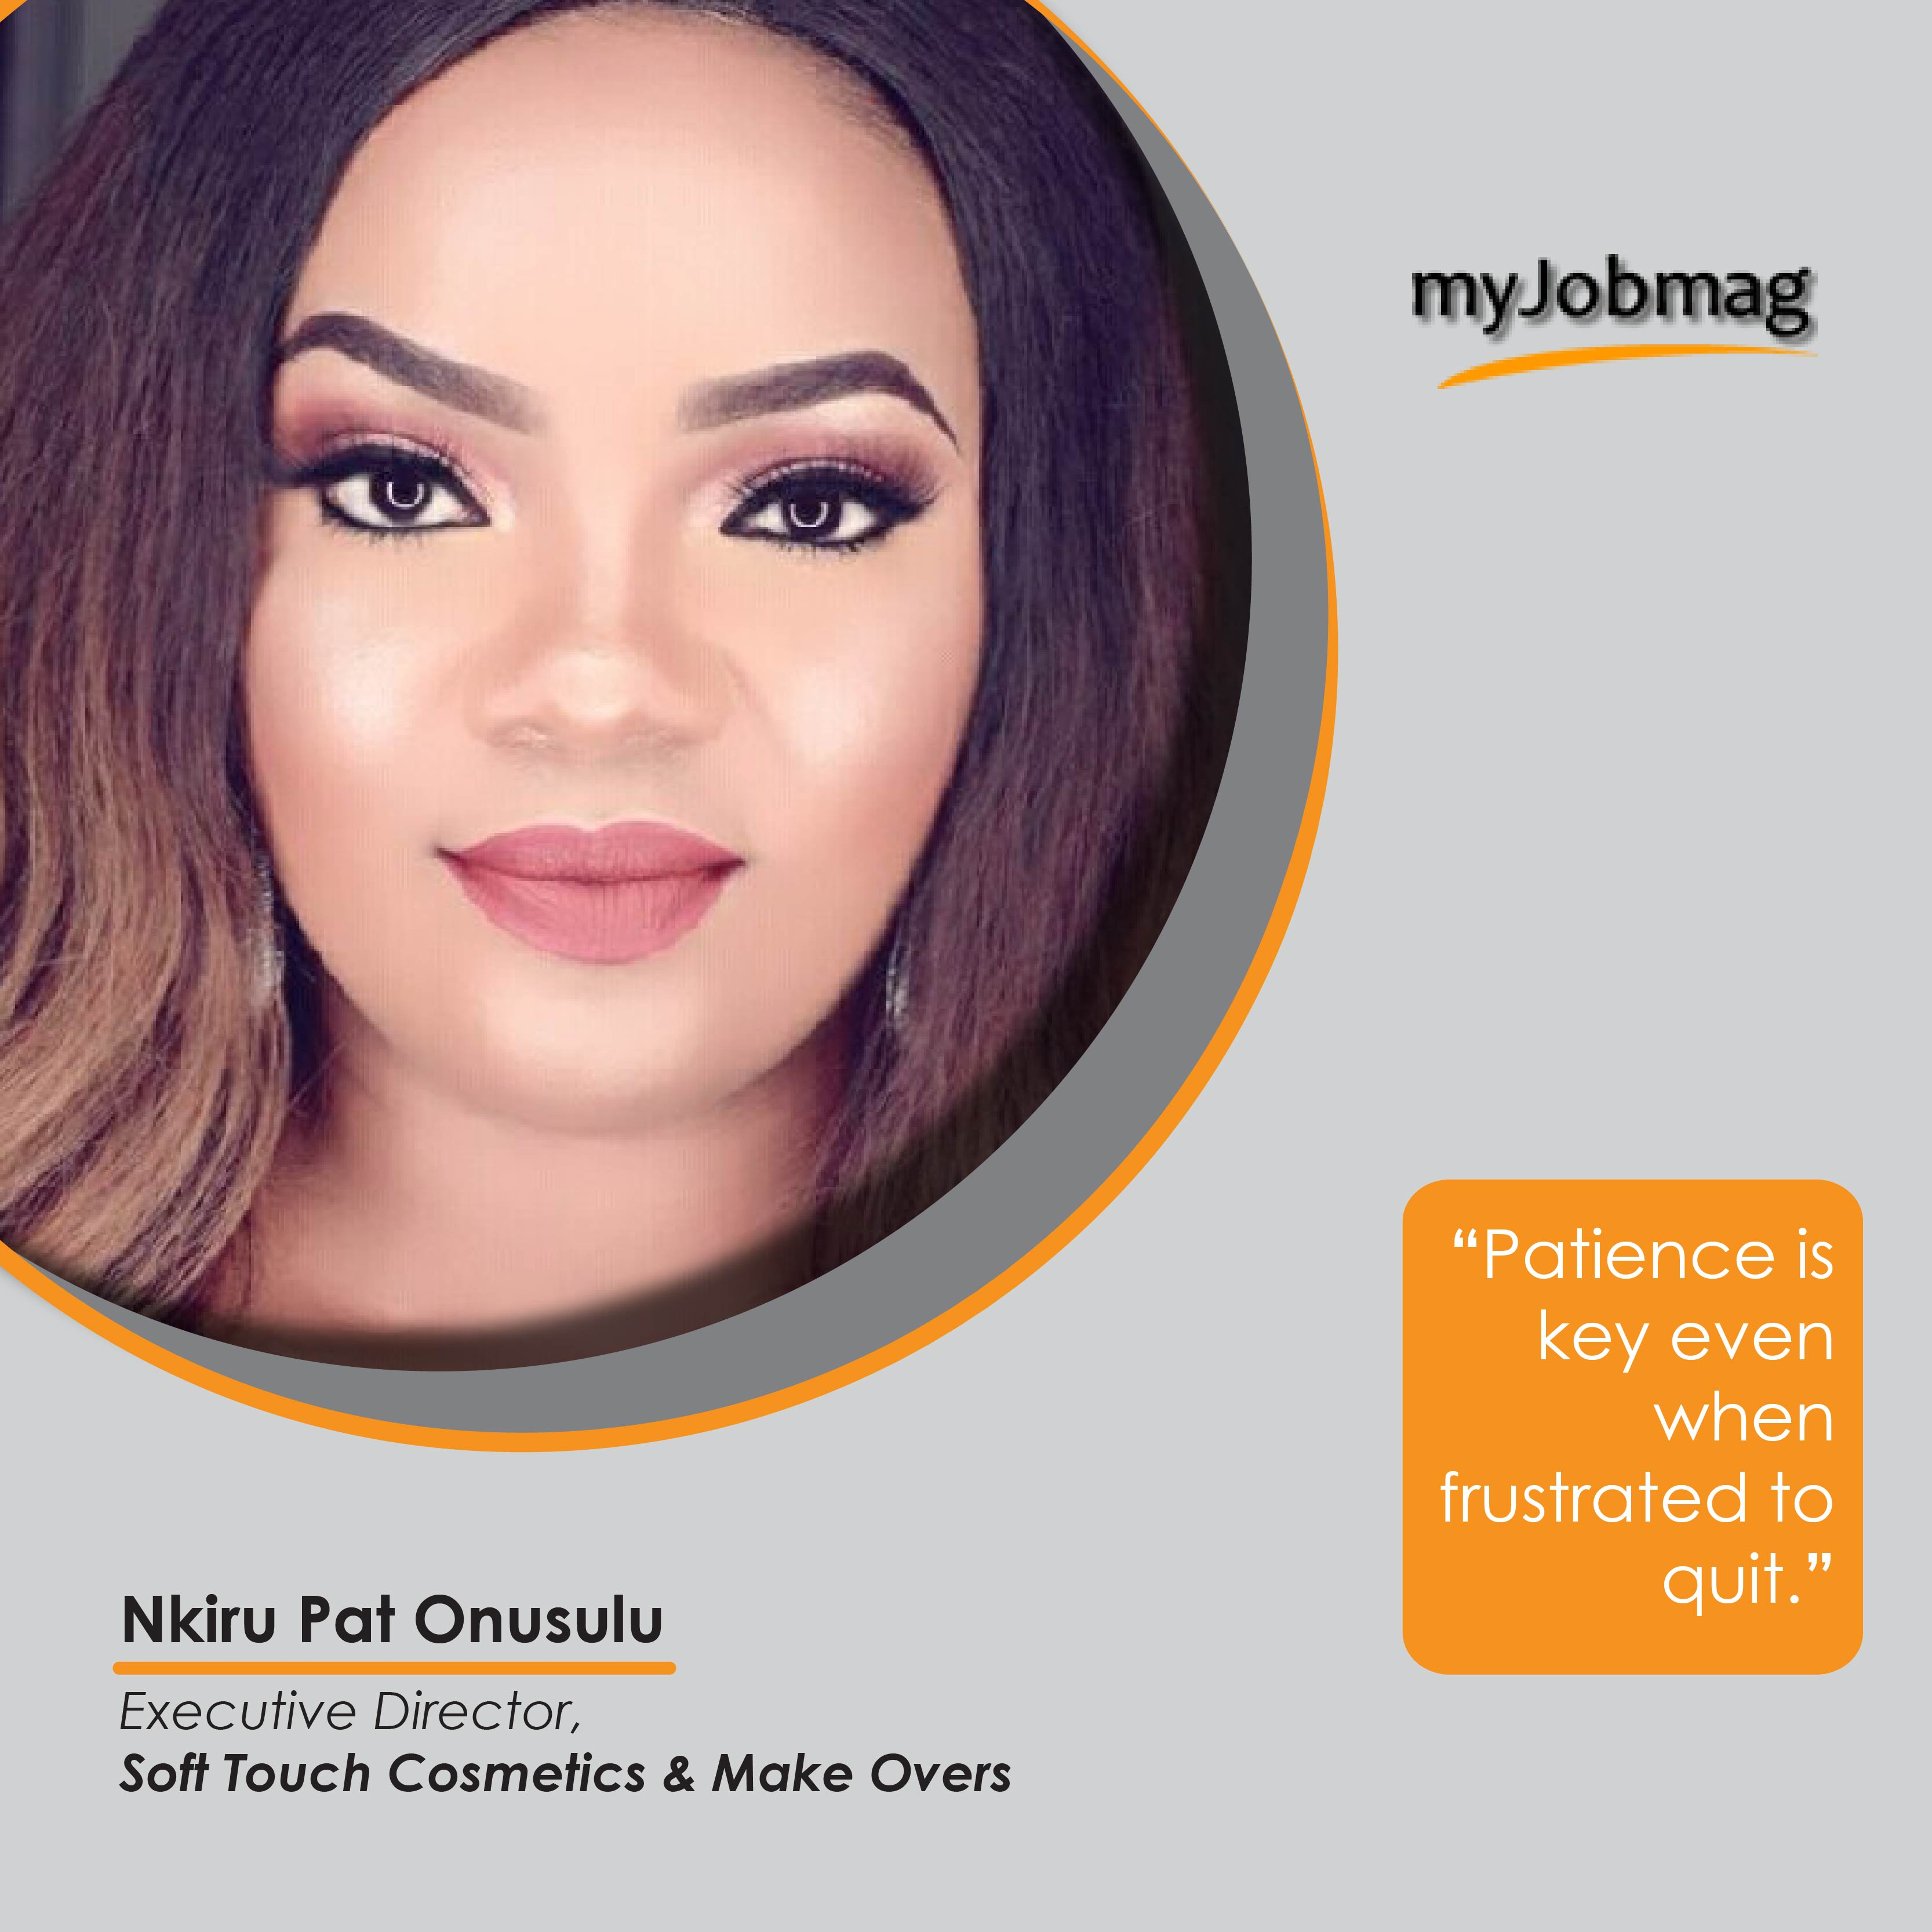 Nkiru Pat Onusulu career advice MyJobMag